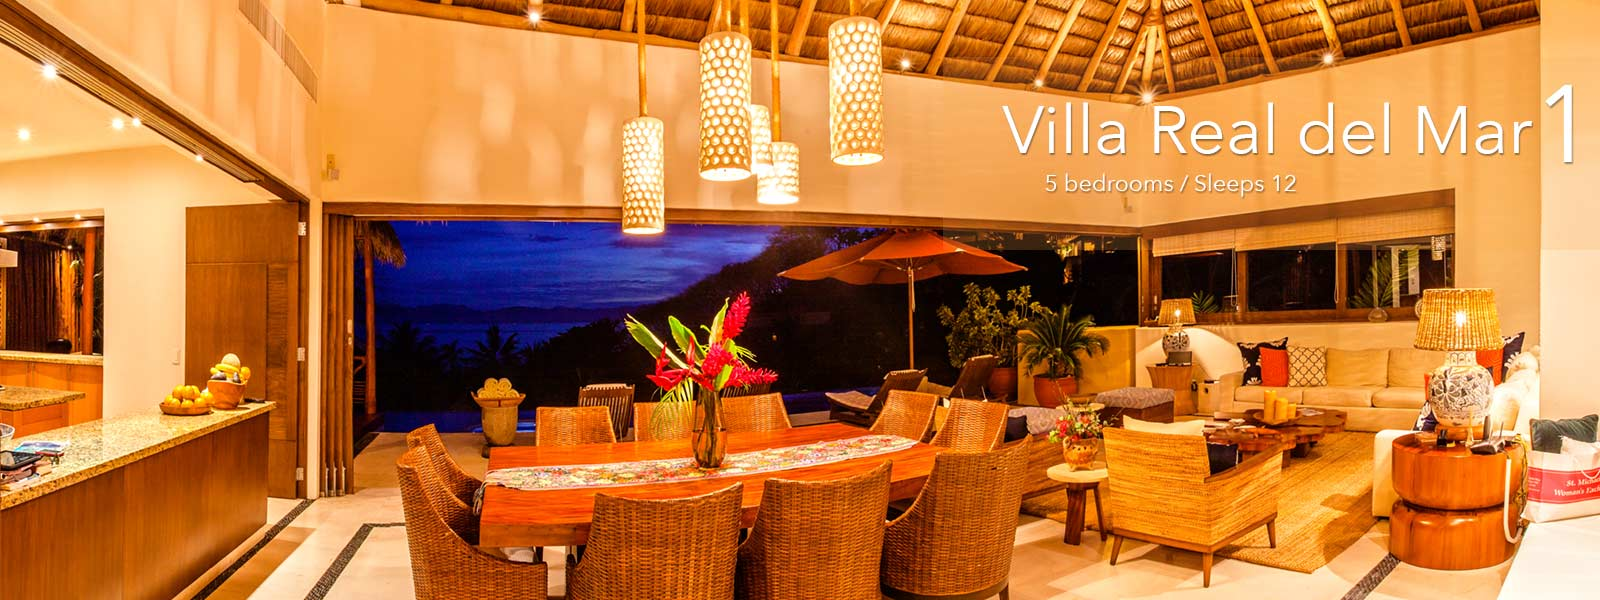 Villa Real del Mar 1 - Luxury Punta de Mita Real Estate and Vacation Rentals